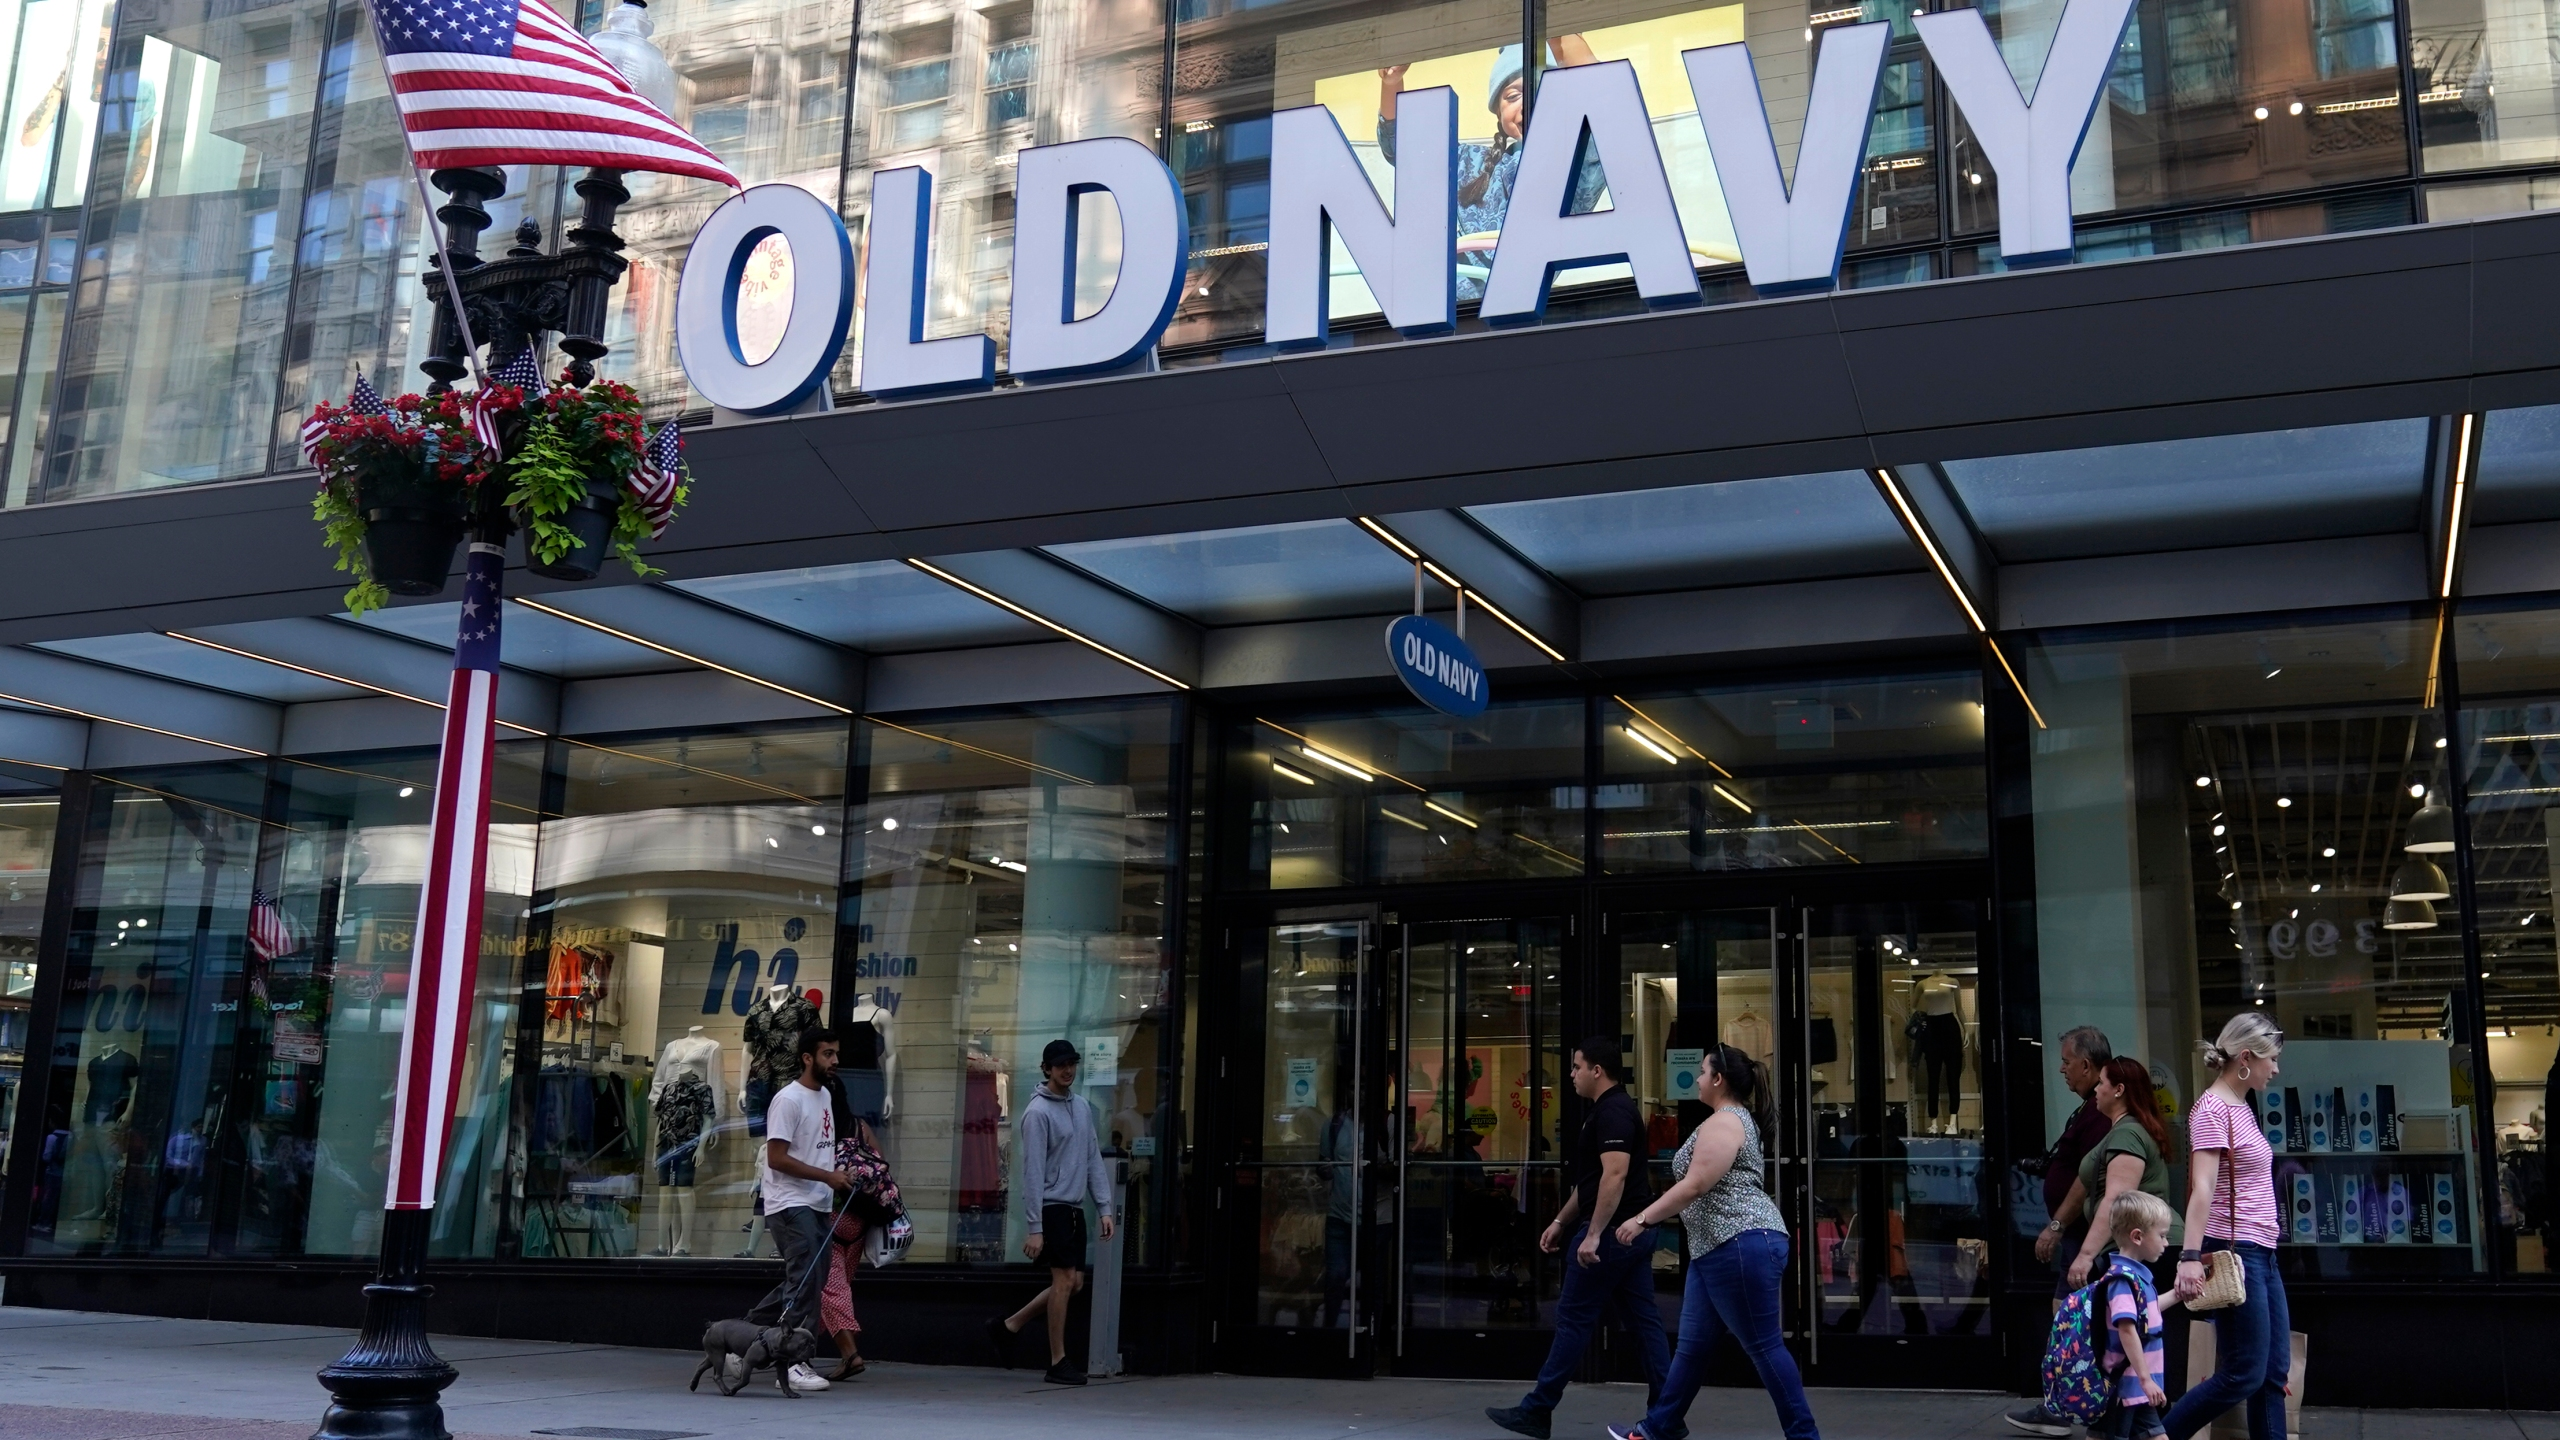 Pedestrians pass the Old Navy store in the Downtown Crossing shopping area, Wednesday, July 14, 2021, in Boston. Gap's low-price division Old Navy is overhauling its approach to how it designs and markets to plus-size women, a growing demographic that many analysts say has been underserved. Starting Friday, Aug. 20, Old Navy will be offering every one of its women's styles in all sizes with no price difference. (AP Photo/Charles Krupa)